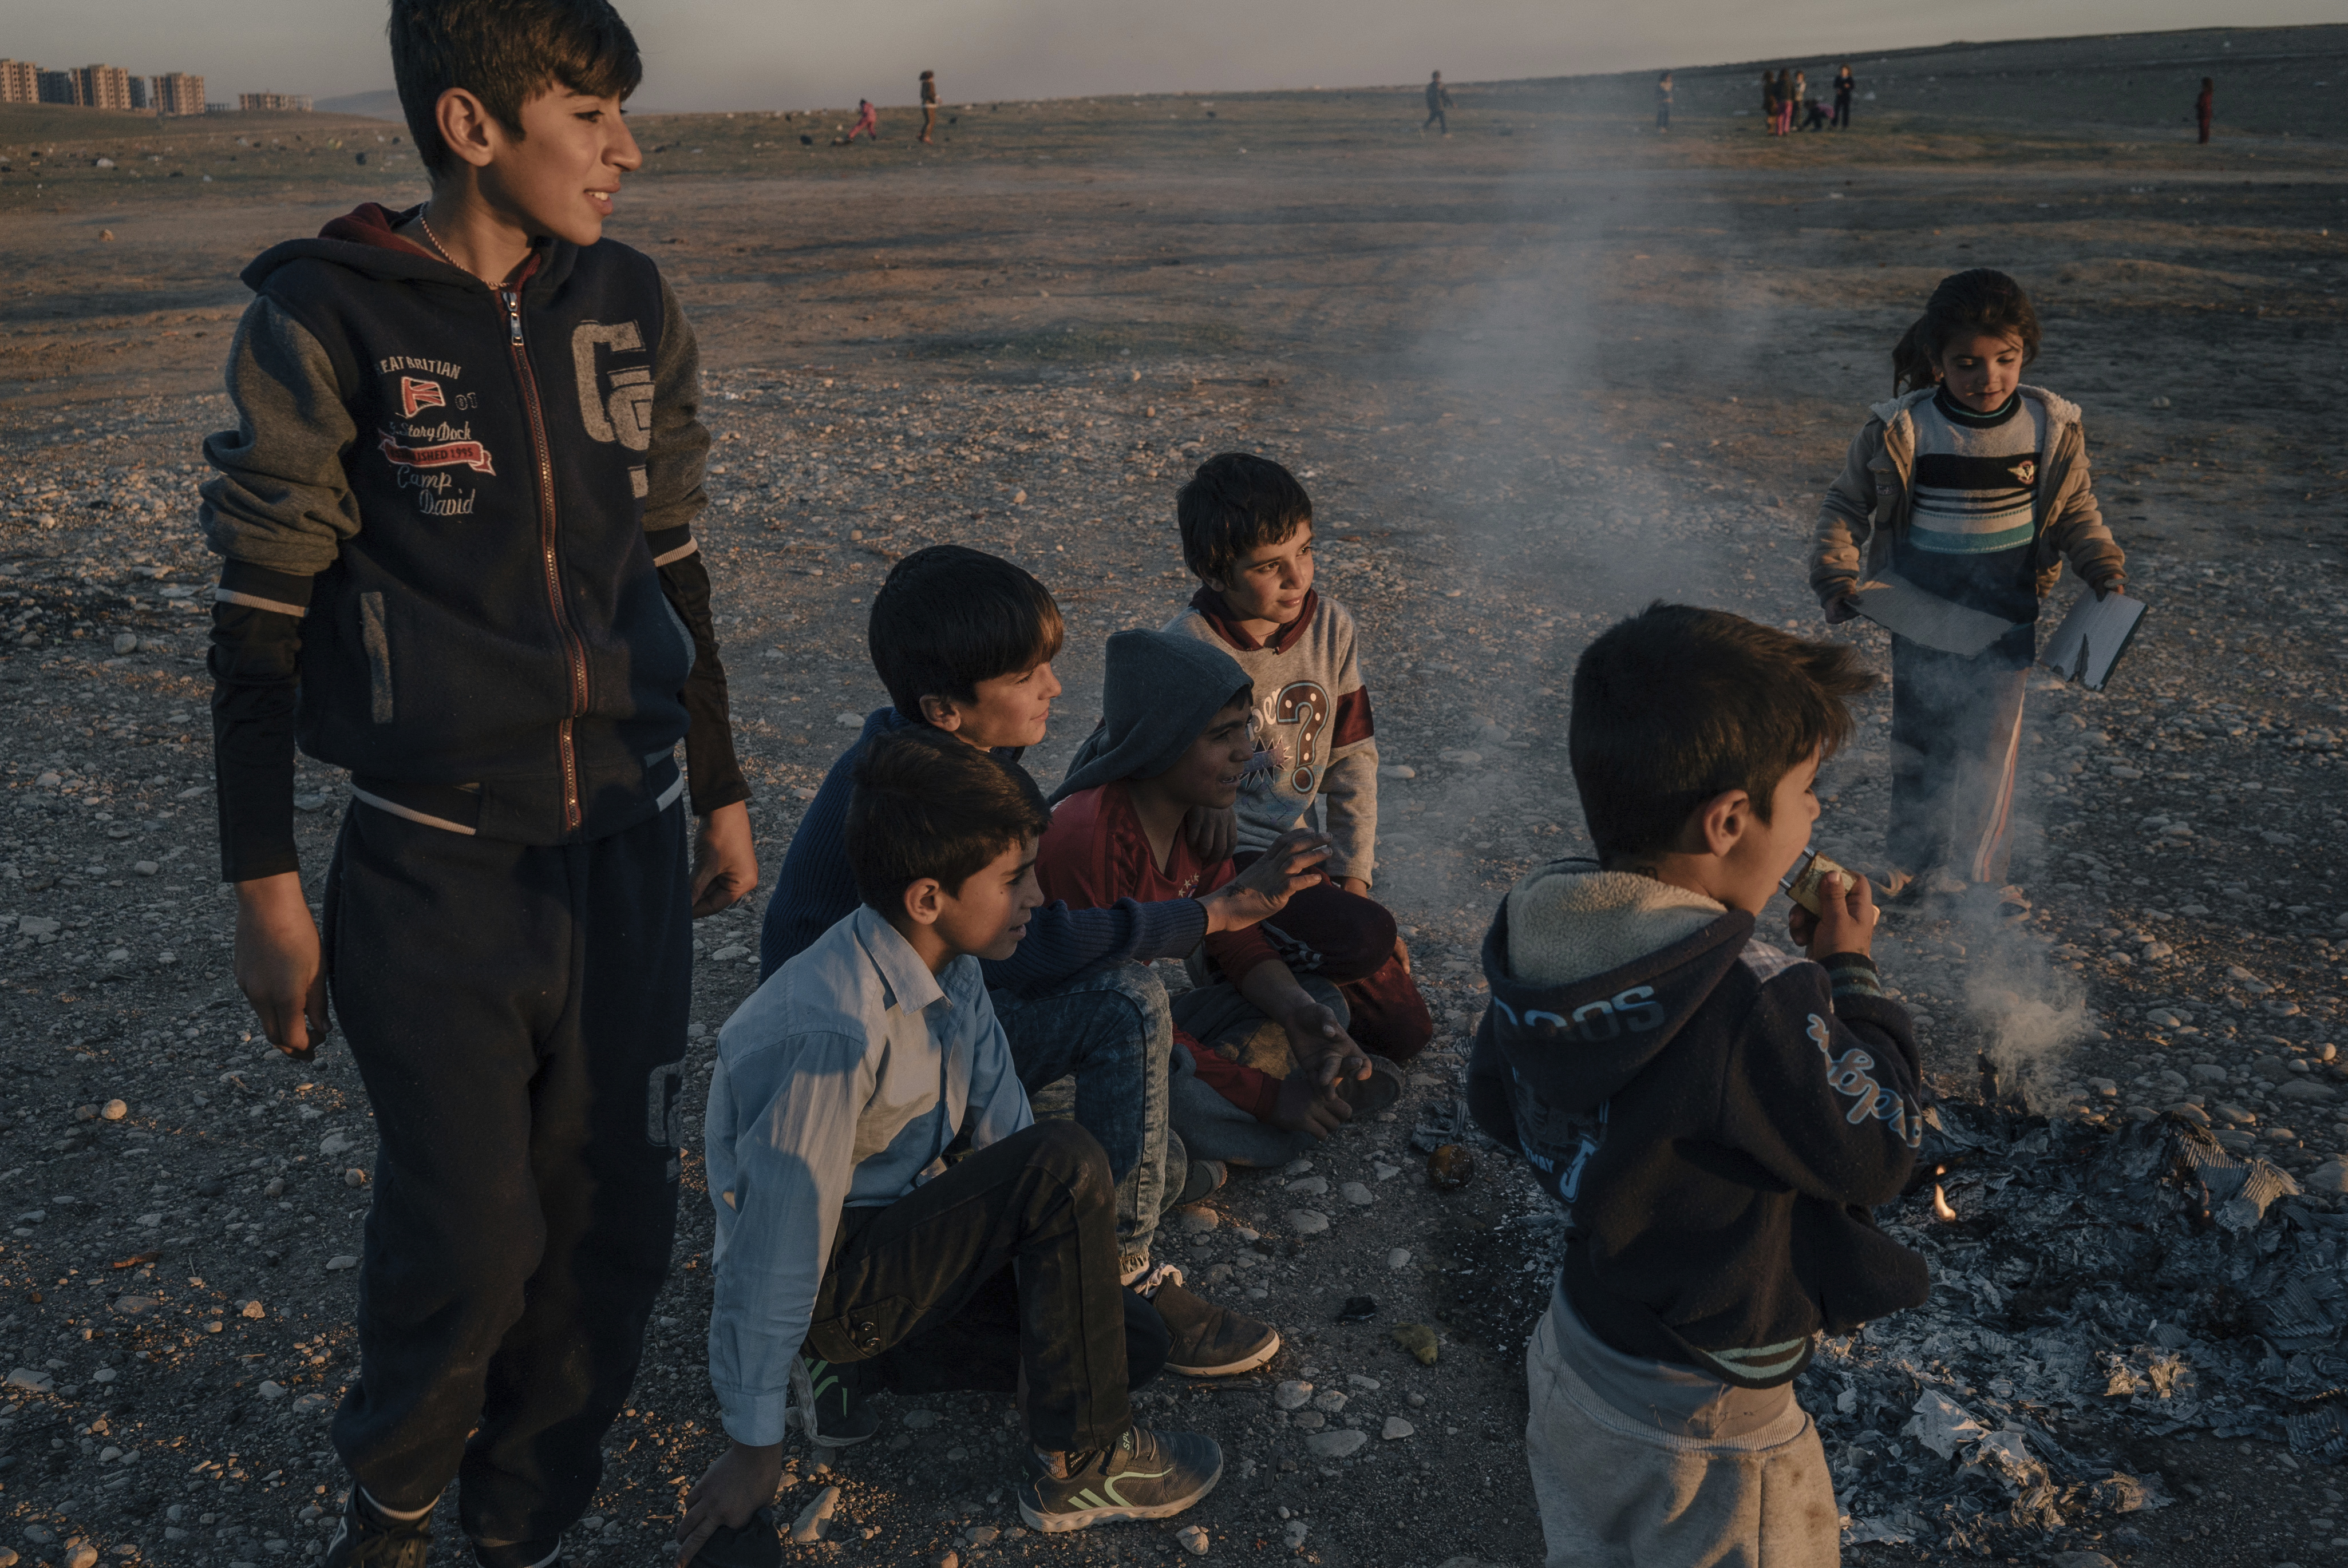 Yazidi children play at sunset outside the Kabarto camp for civilians displaced by war in Iraq, Jan. 11, 2017.